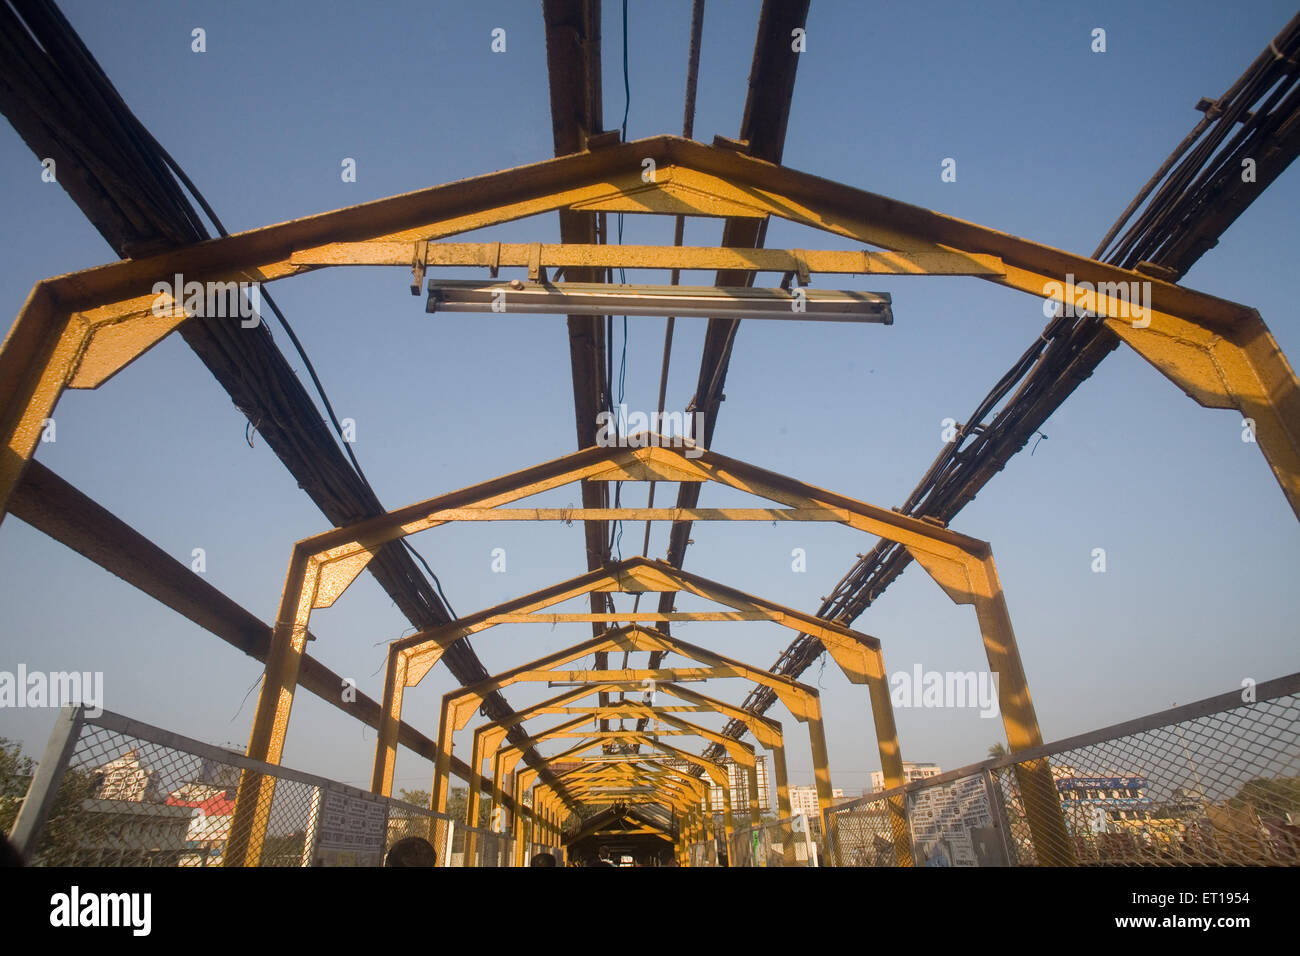 Steel structure under construction bridge ; Borivali ; Bombay Mumbai ; Maharashtra ; India Stock Photo